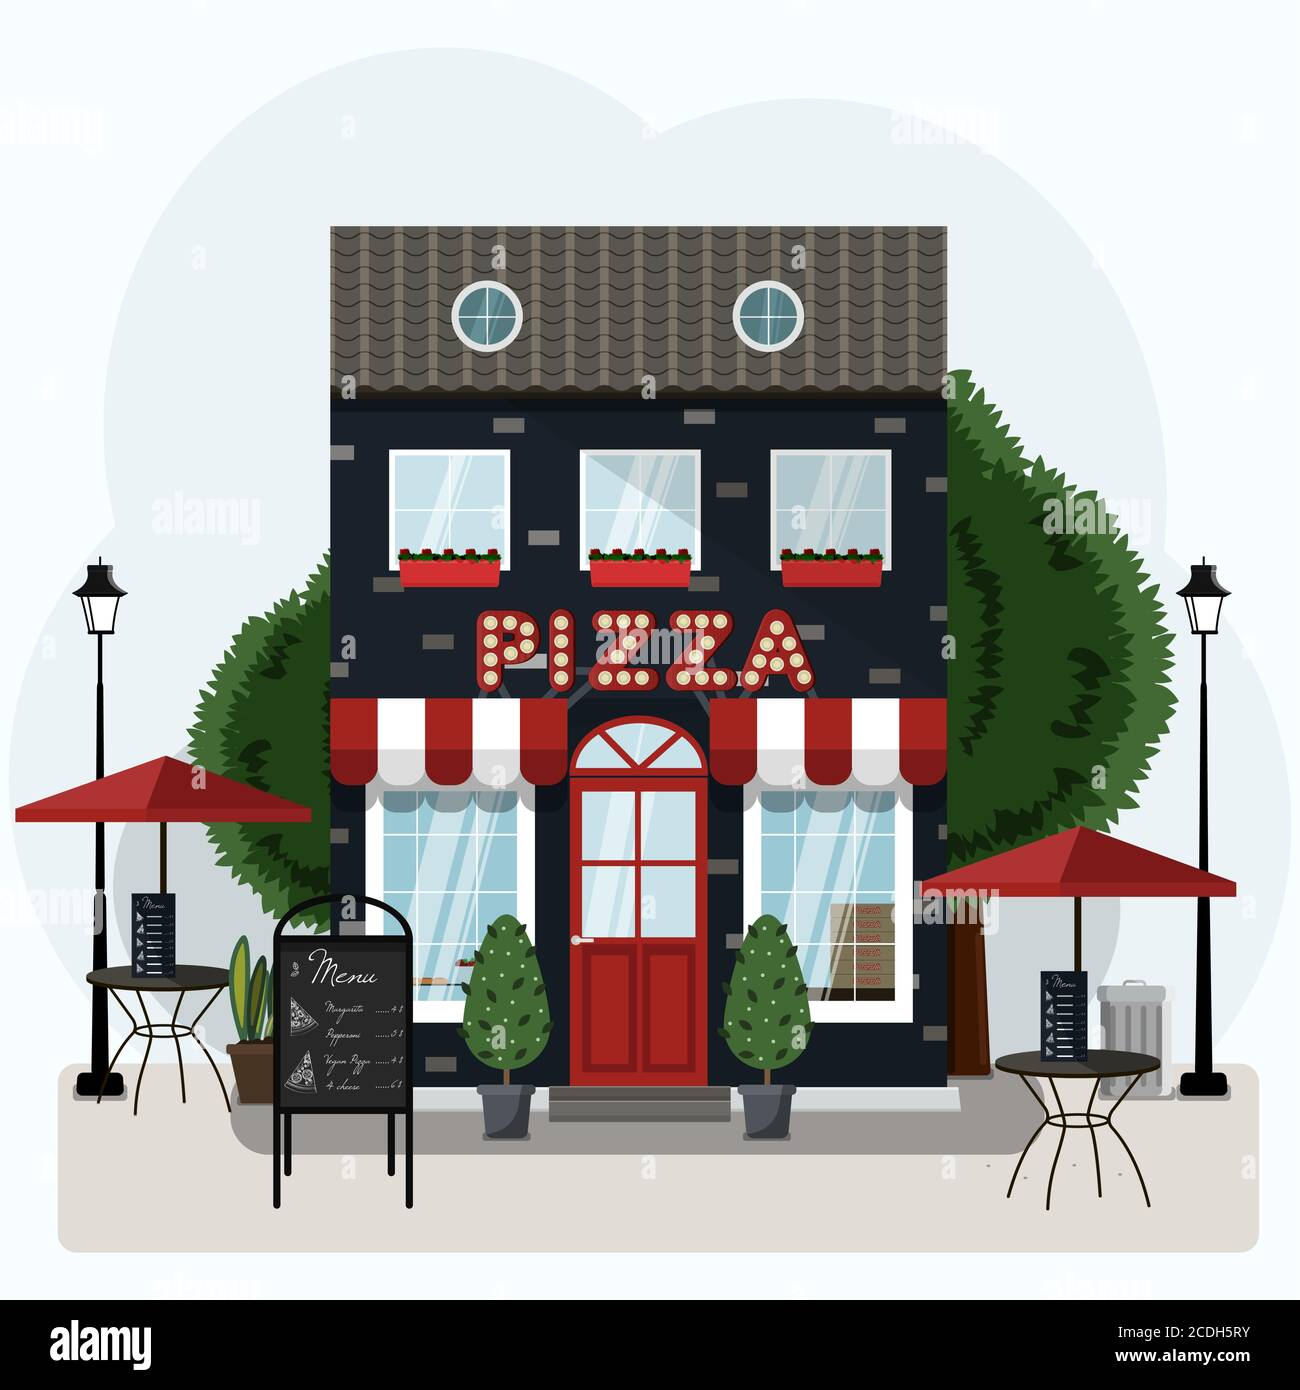 Facade Of A Pizza Restaurant With Outdoor Tables And Home Delivery Vector Illustration Of A Pizzeria With A Red And White Canopy Billboard And Potted Plants Nice Building Of An Italian Restaurant